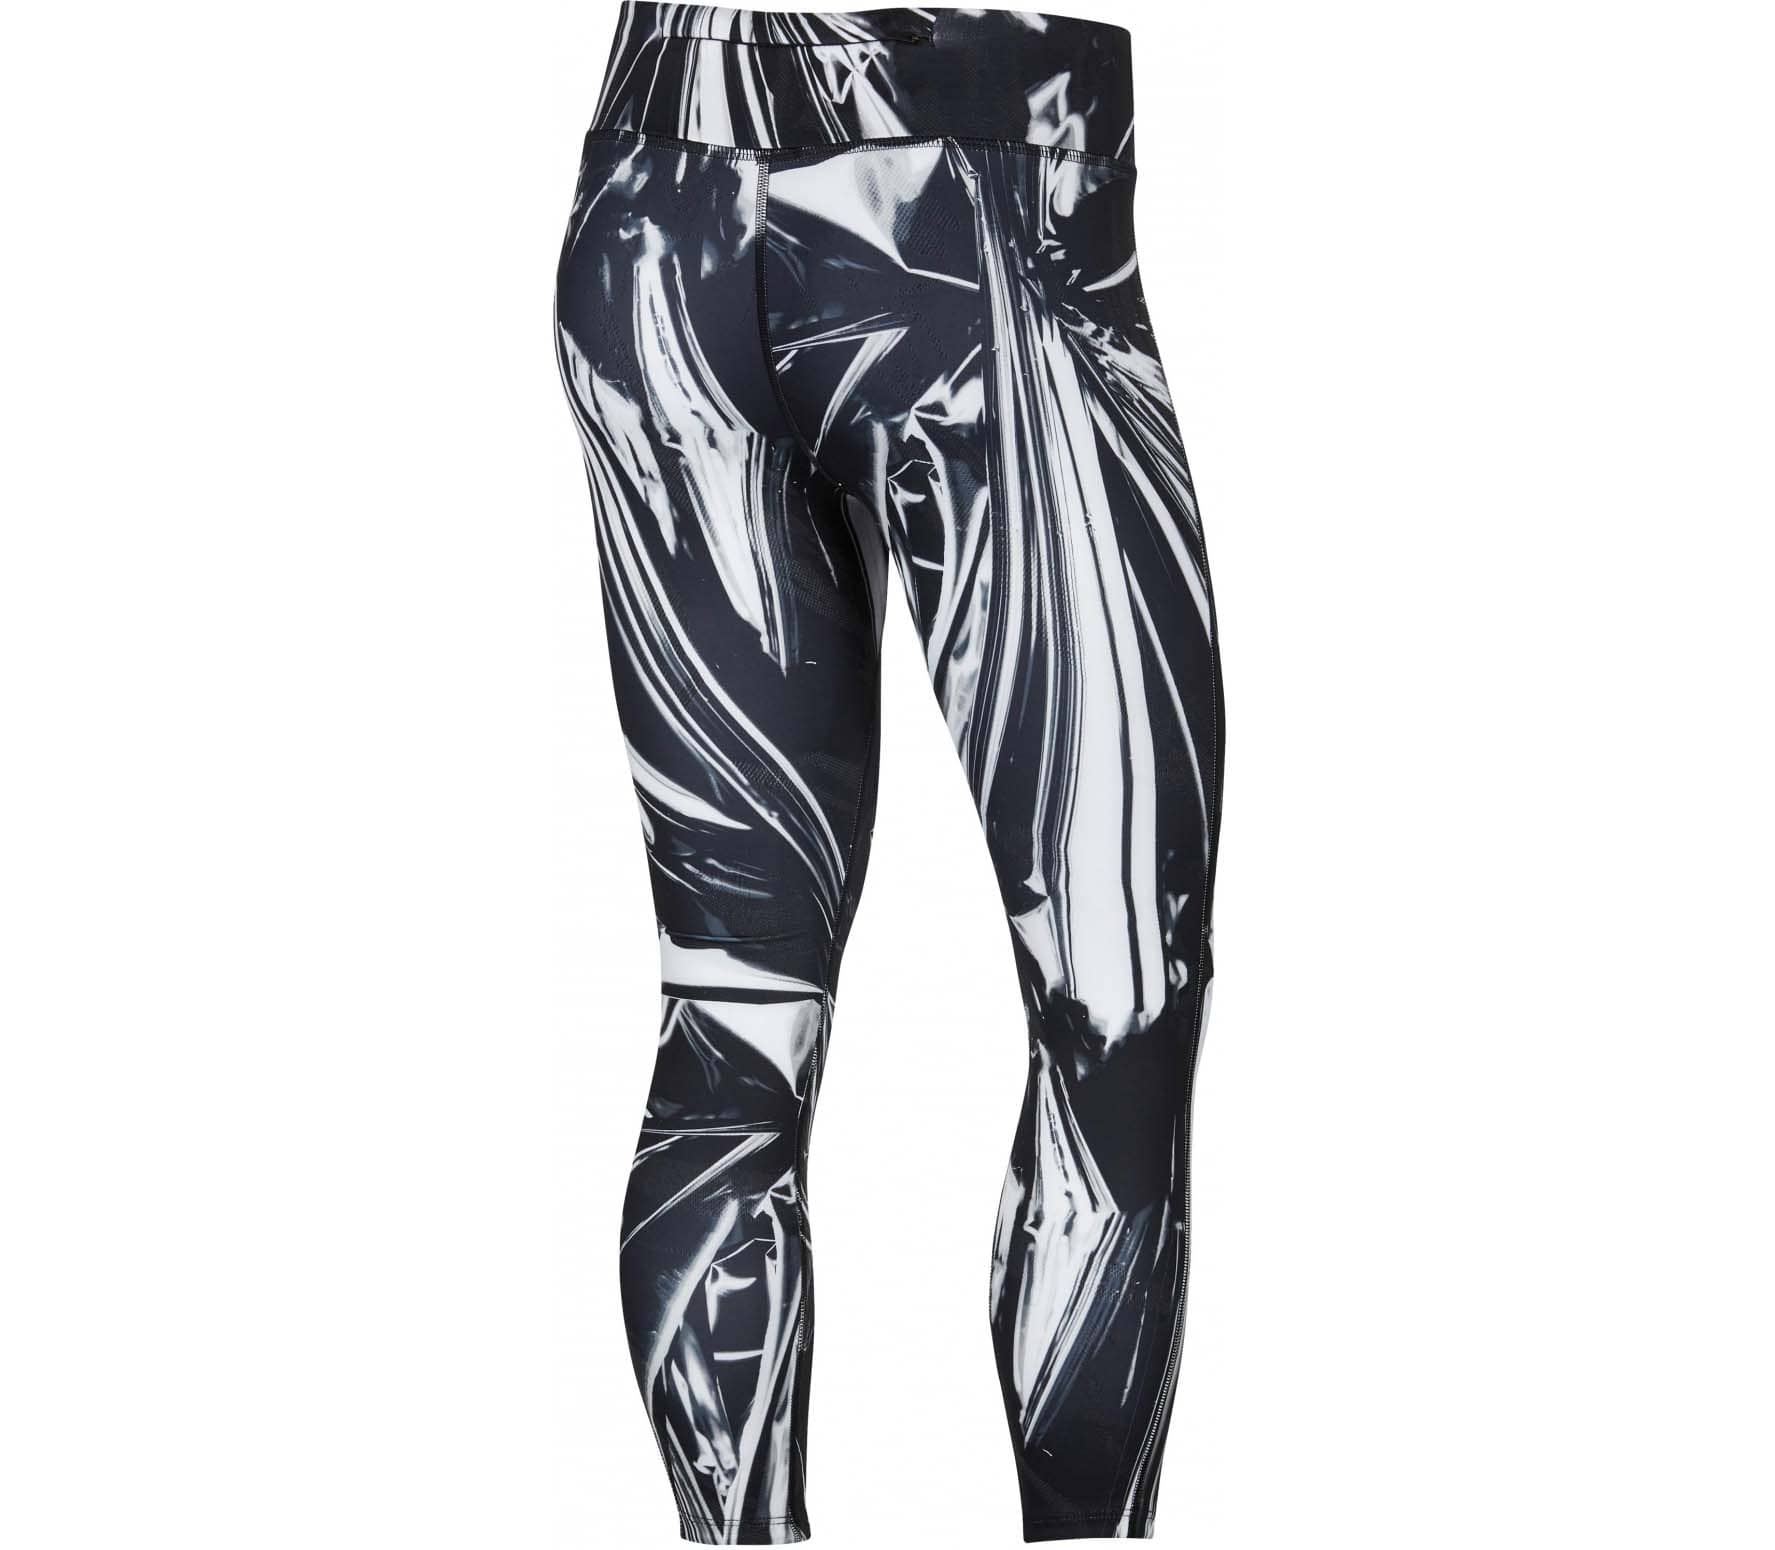 Women's Running Pants and Tights | REI Co op